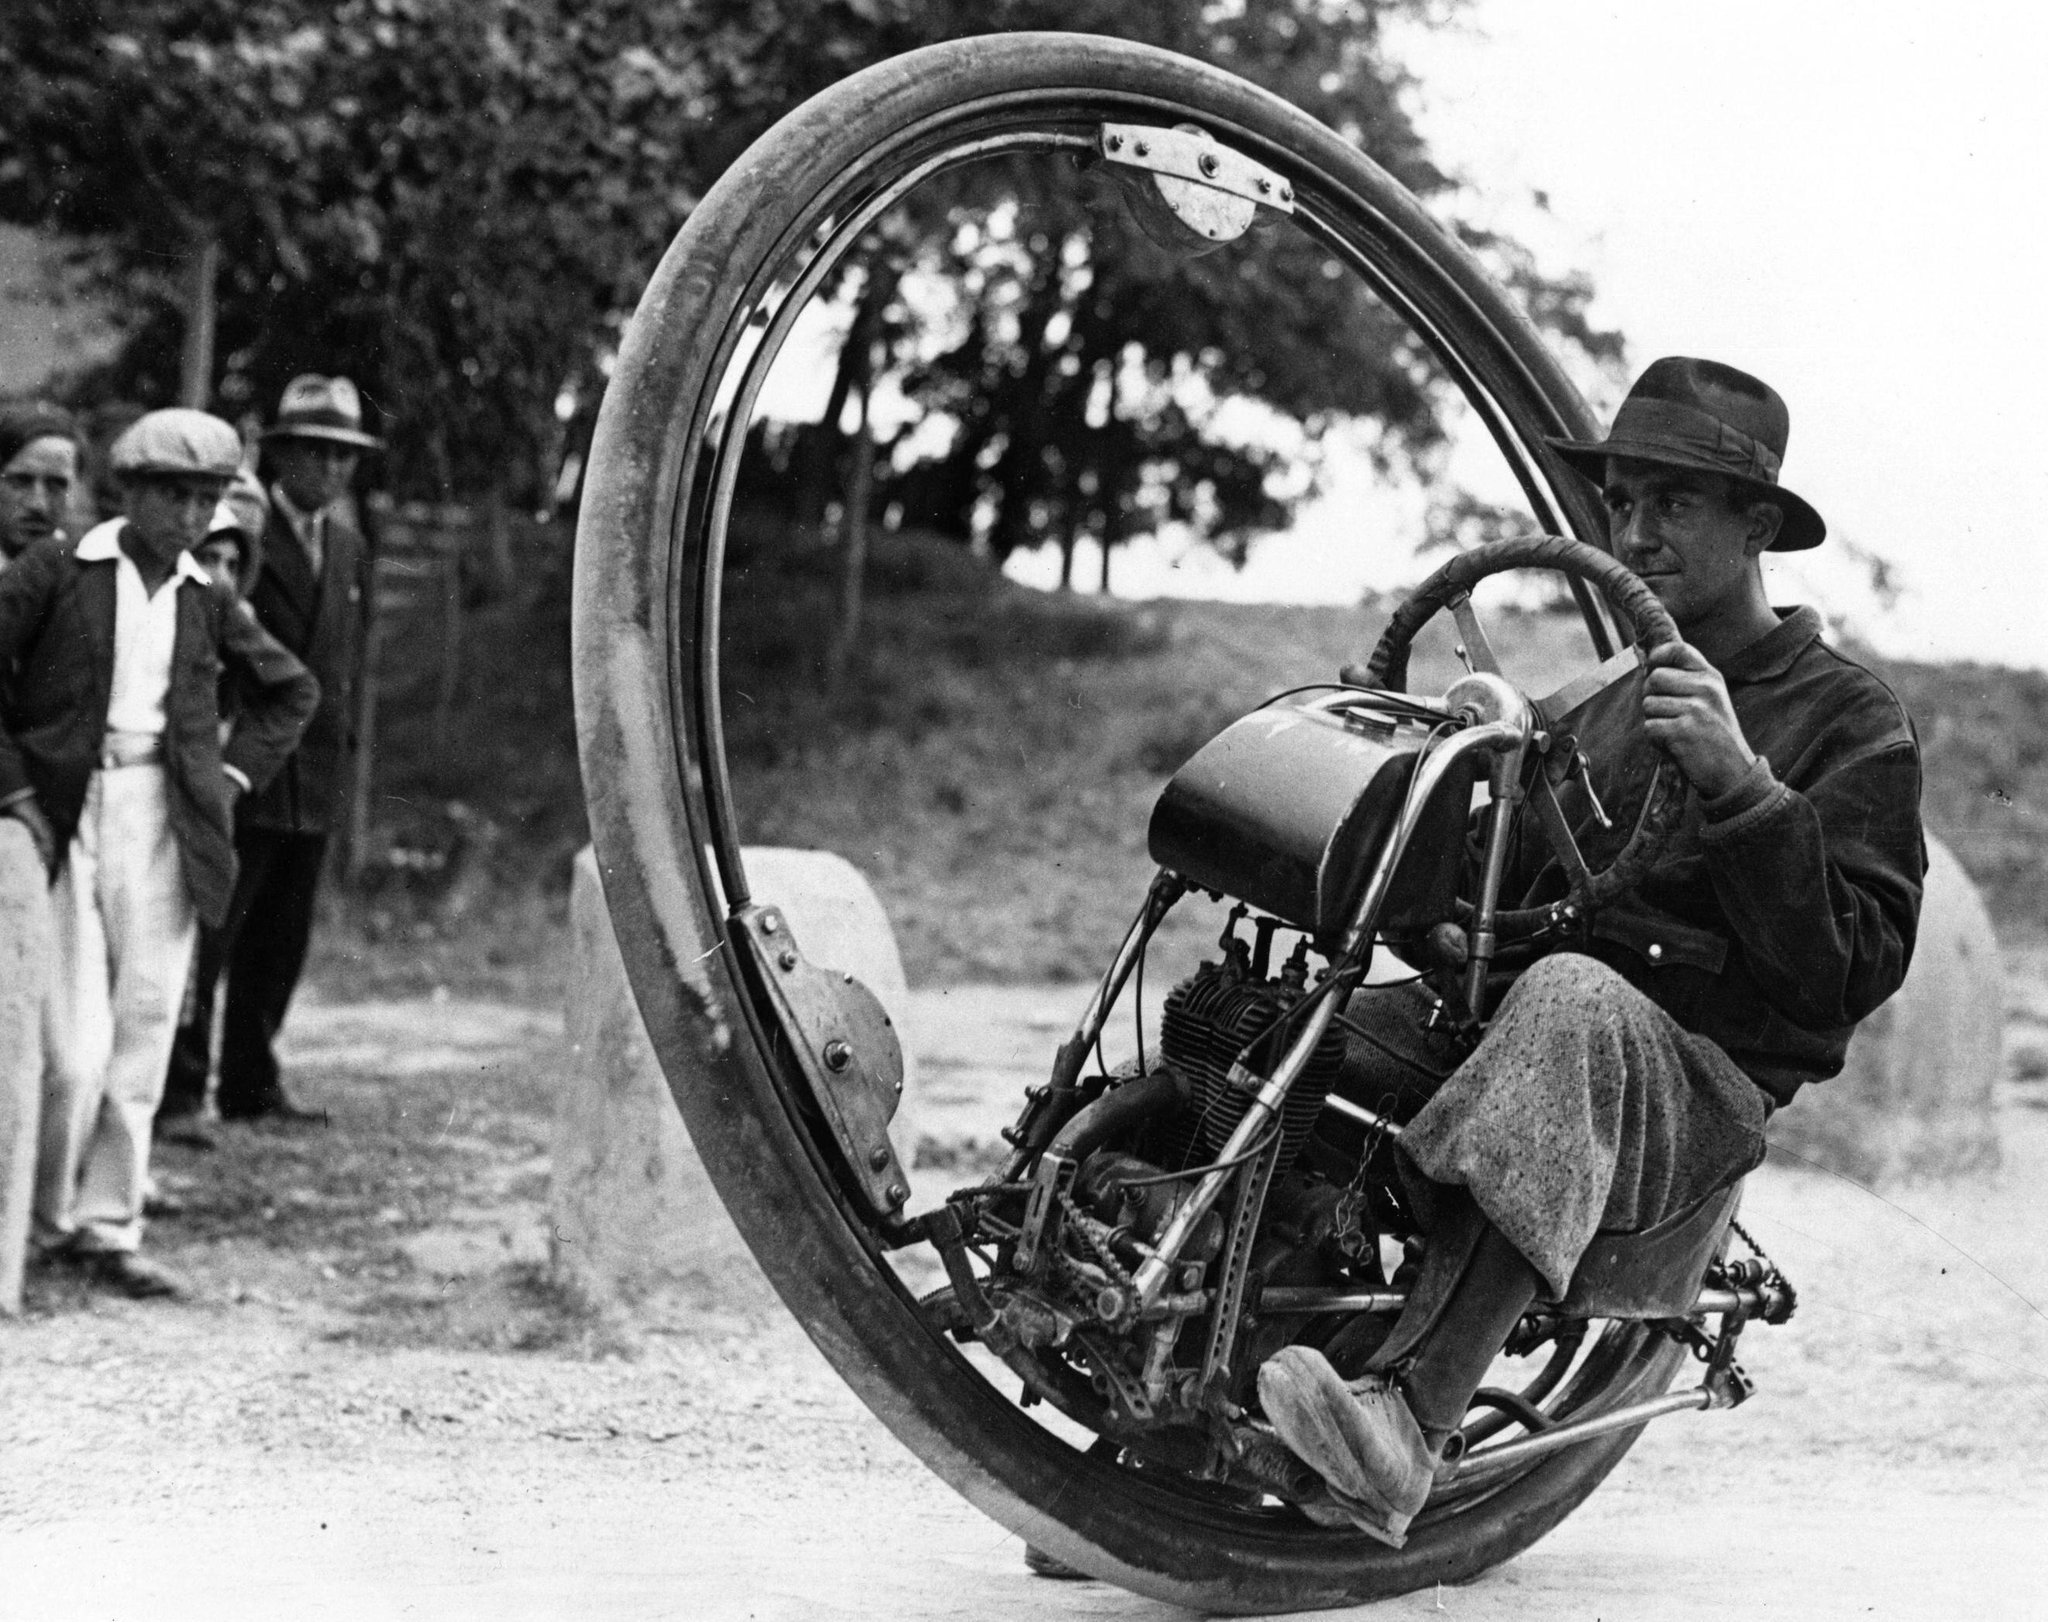 Photo of the day: Monocycle from the 1930's http://t.co/olNXm3617s